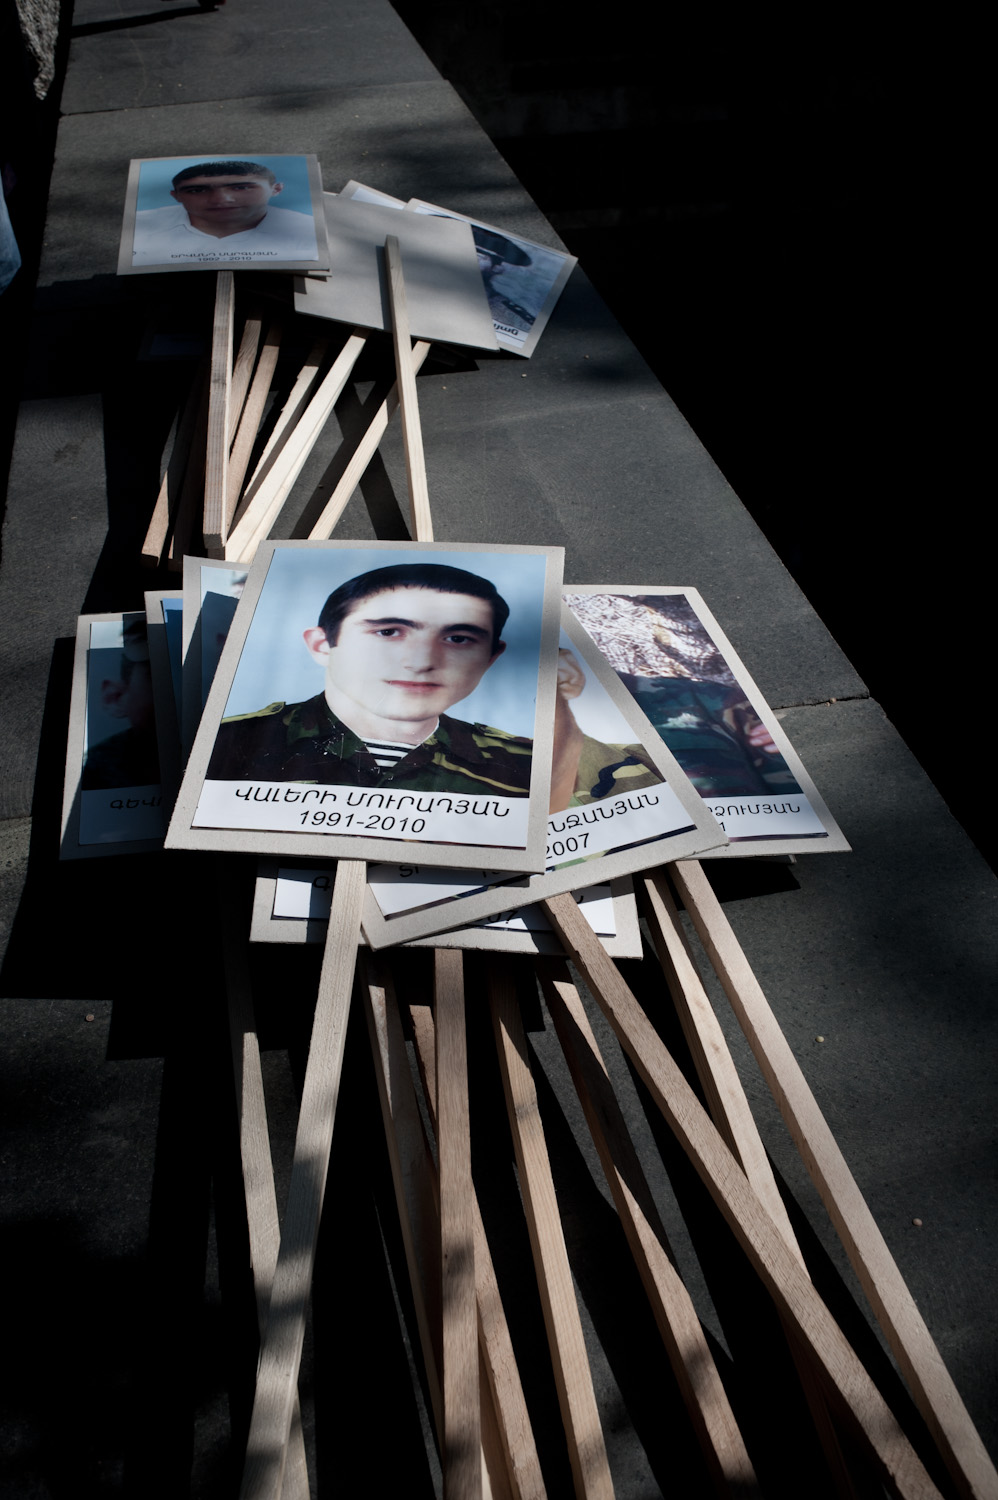 Human rights organizations estimate the number of noncombat deaths since Armenia's armed forced were established to be between 1500 and 3000. (Source:  Helsinki Citizens' Assembly )